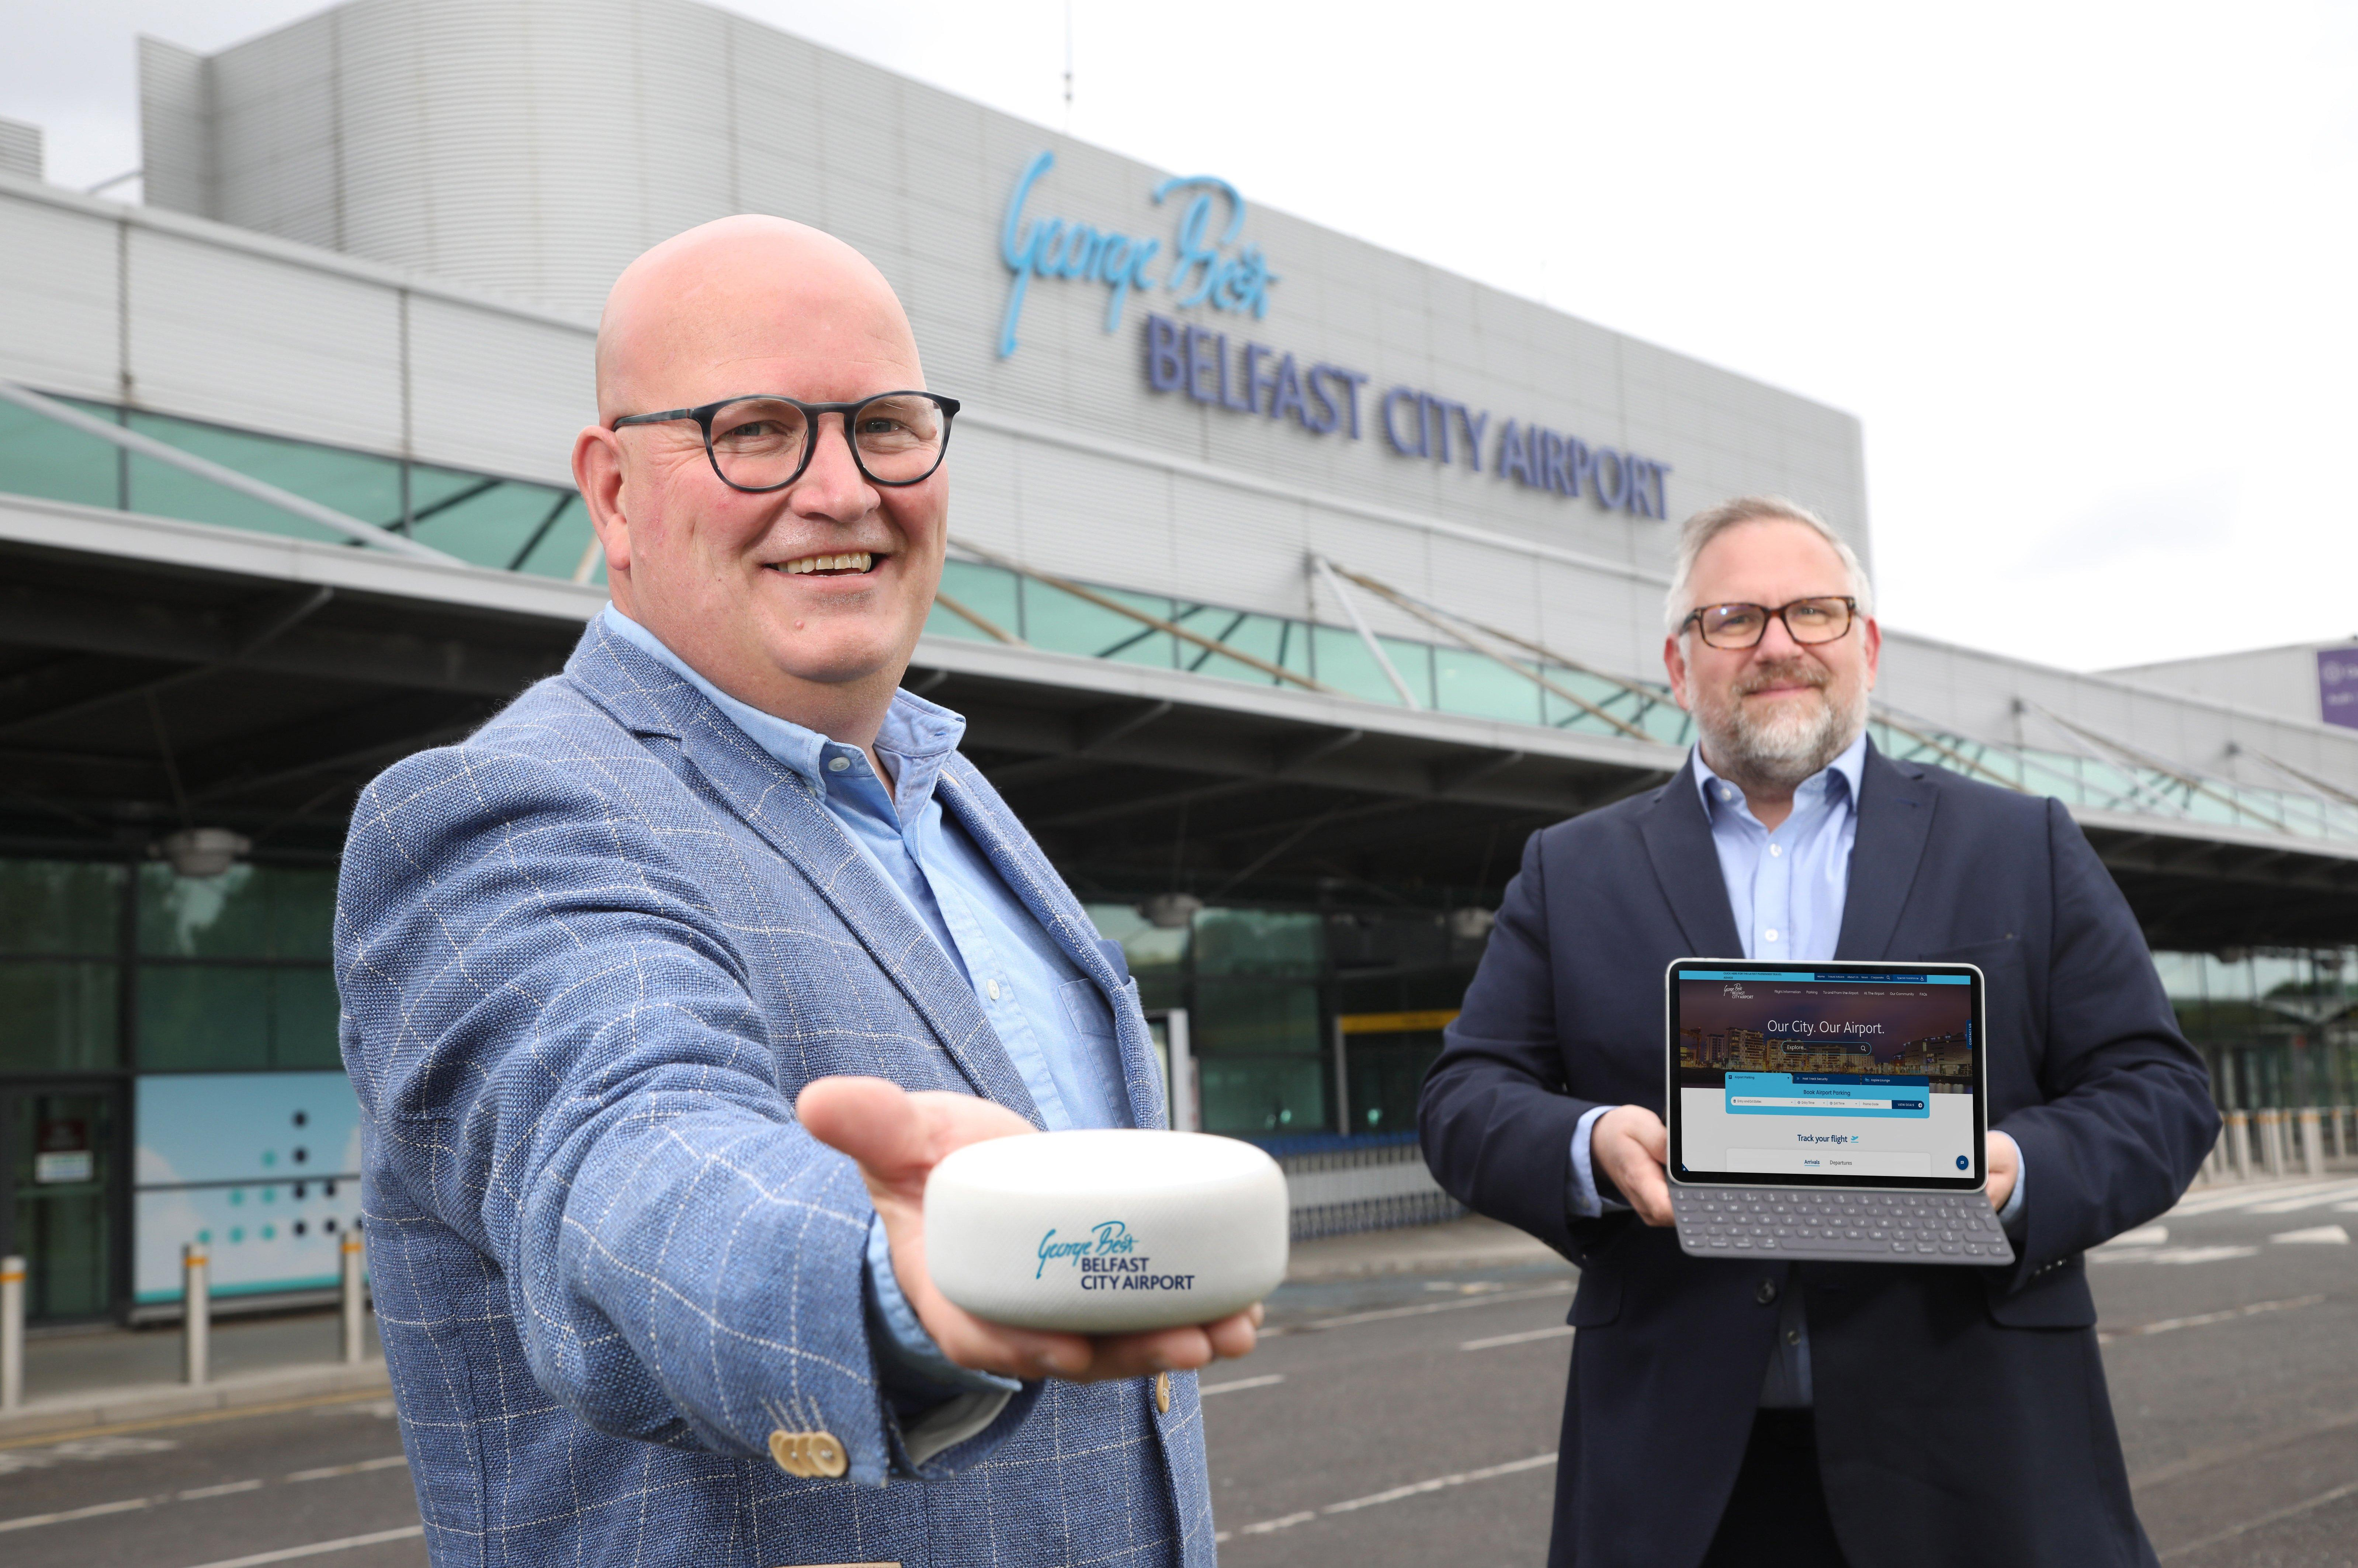 newsletter.co.uk - Claire Cartmill - George Best Belfast City Airport kickstarts six-figure investment in digital transformation